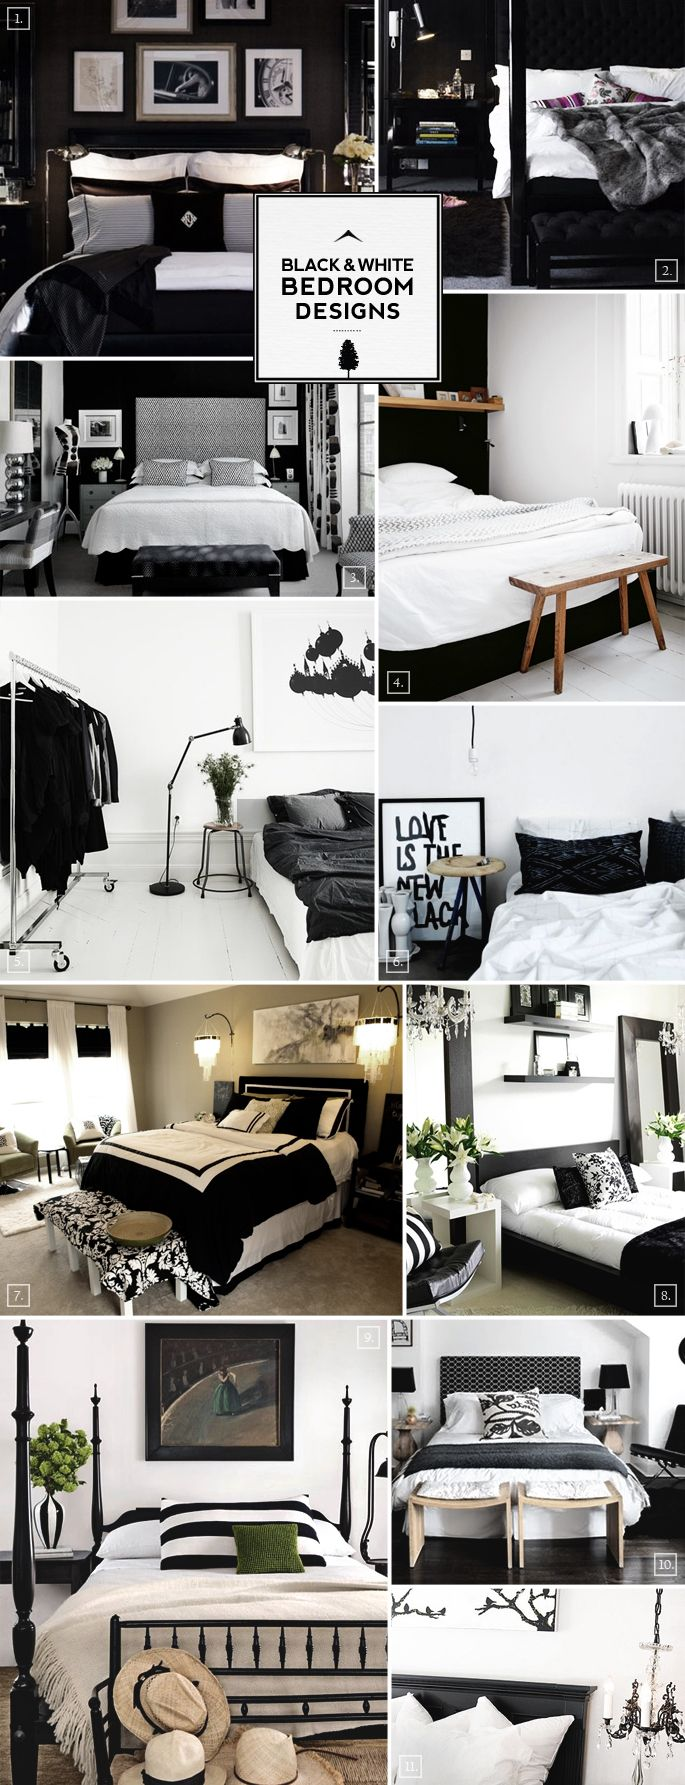 Black And White Bedroom Designs And Decor Ideas White Bedroom Design Black Rooms Bedroom Design